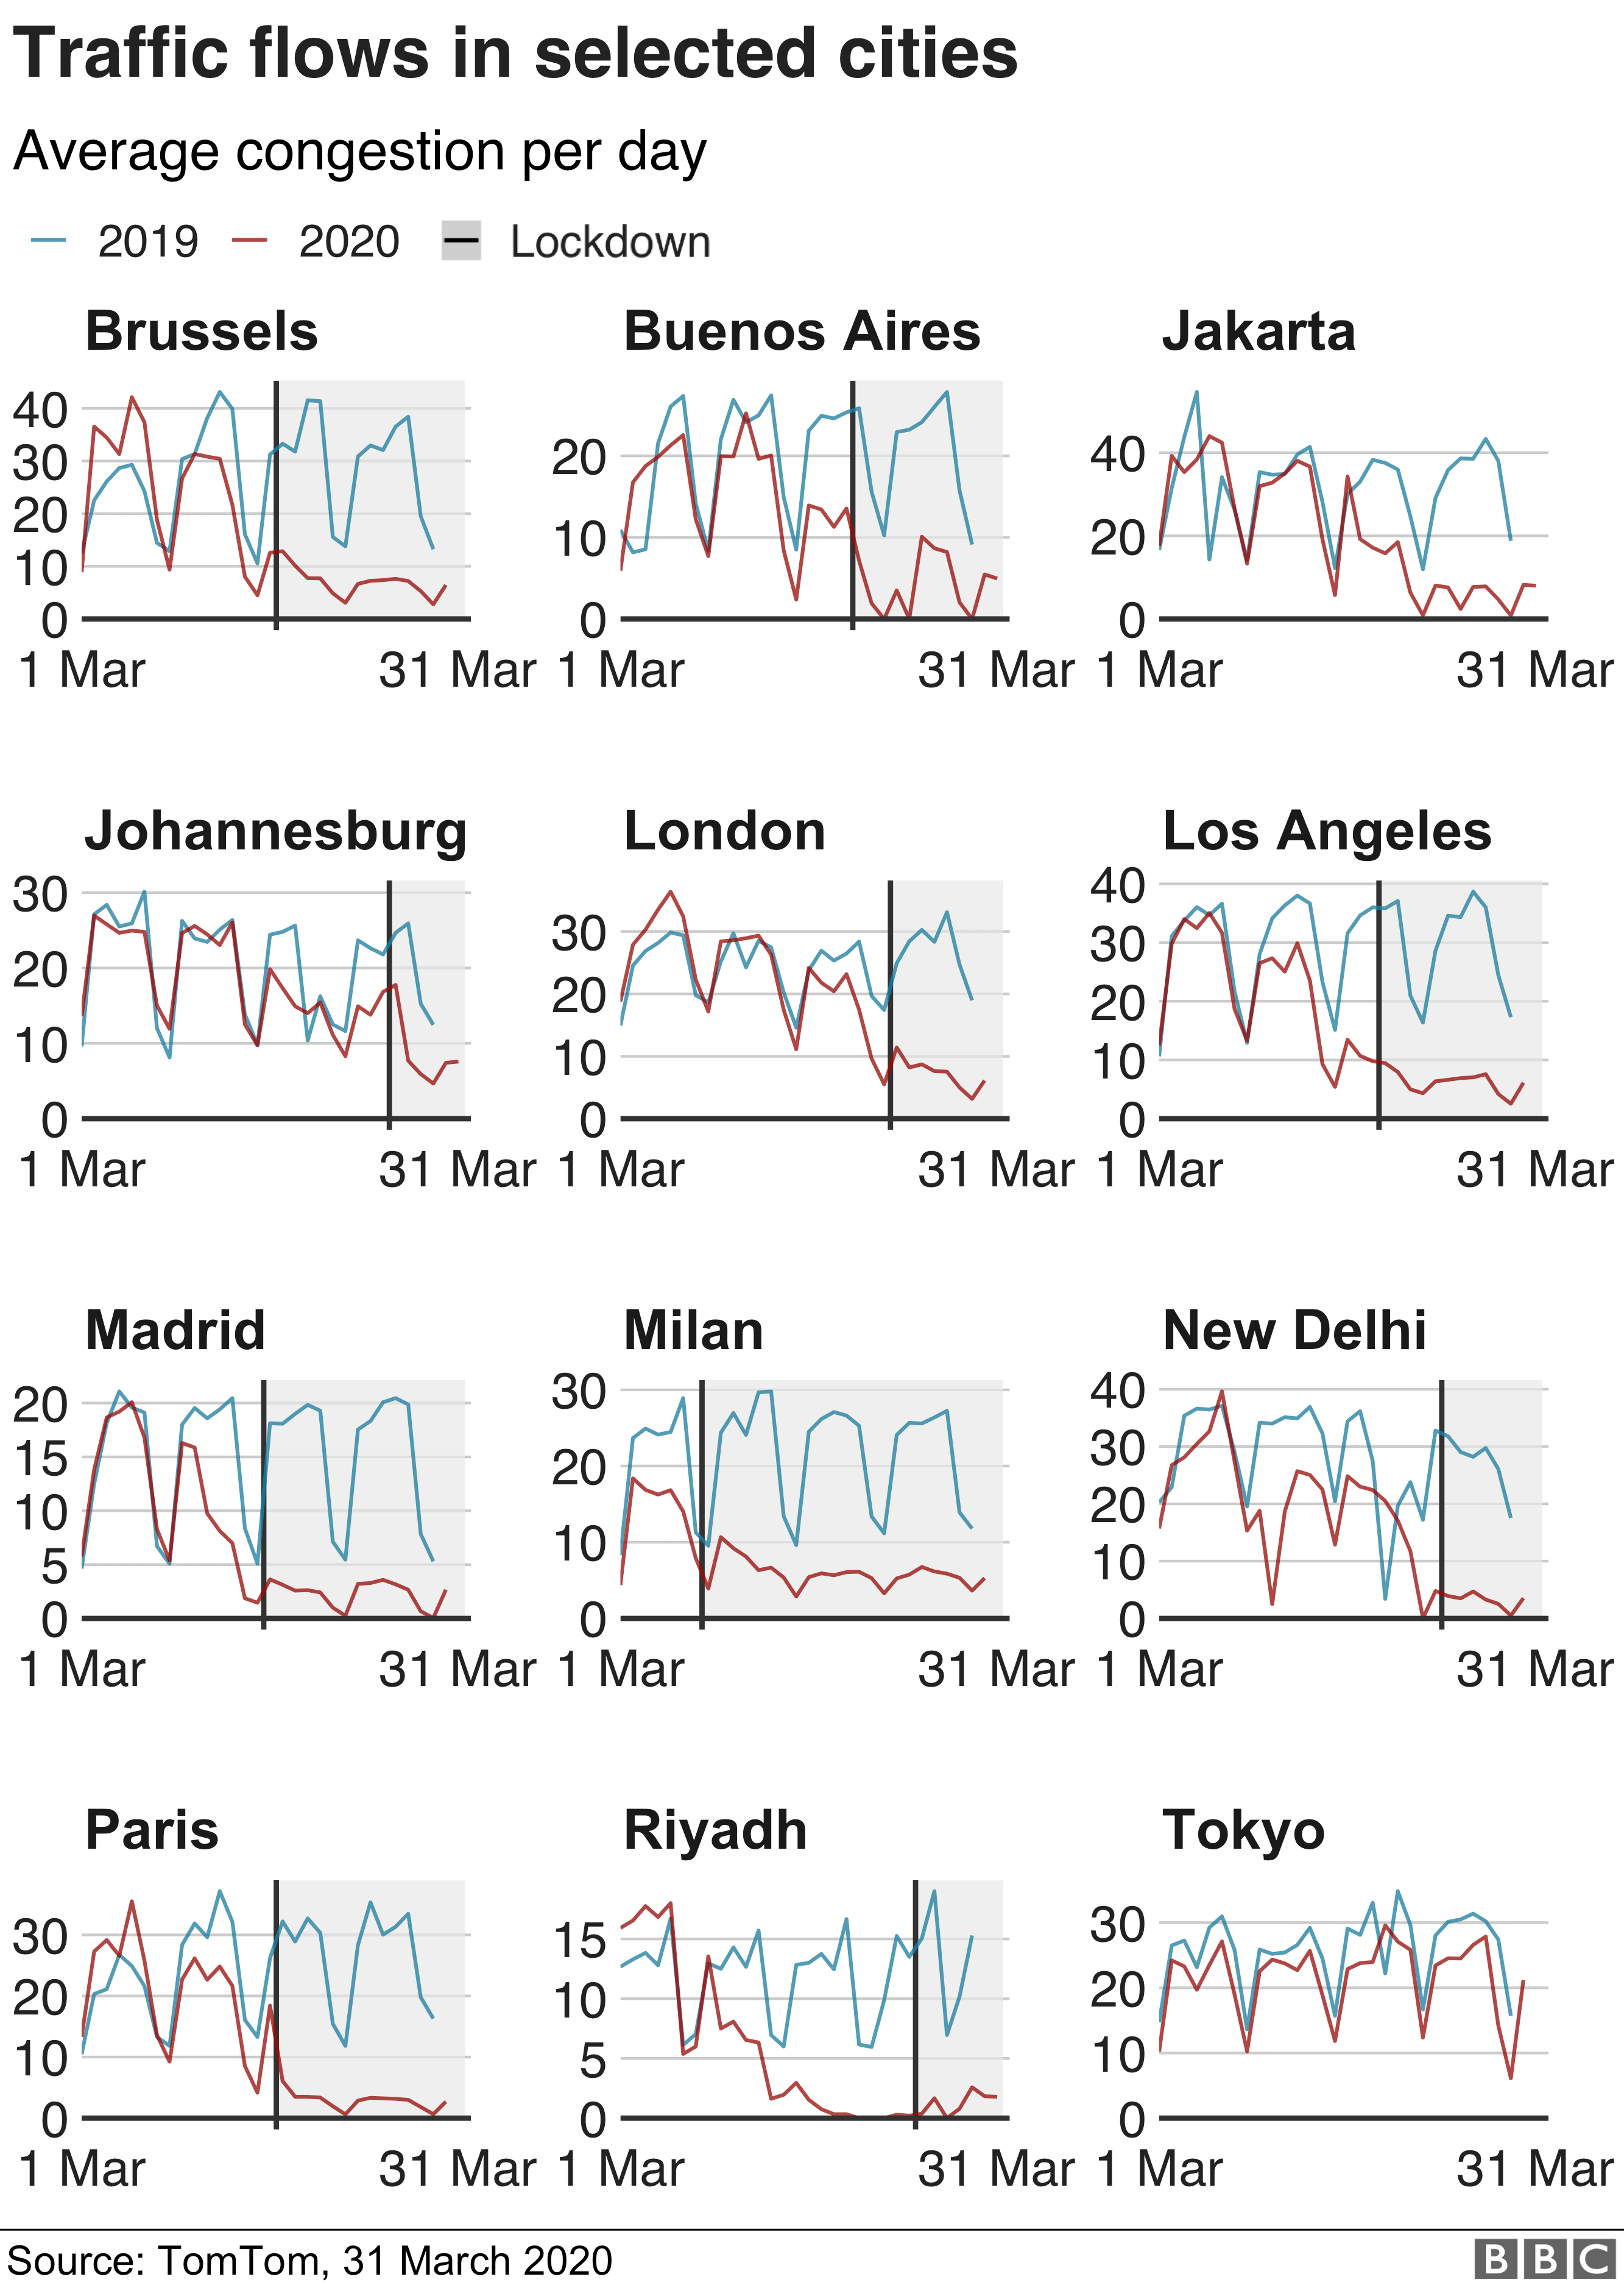 Traffic flows in selected cities